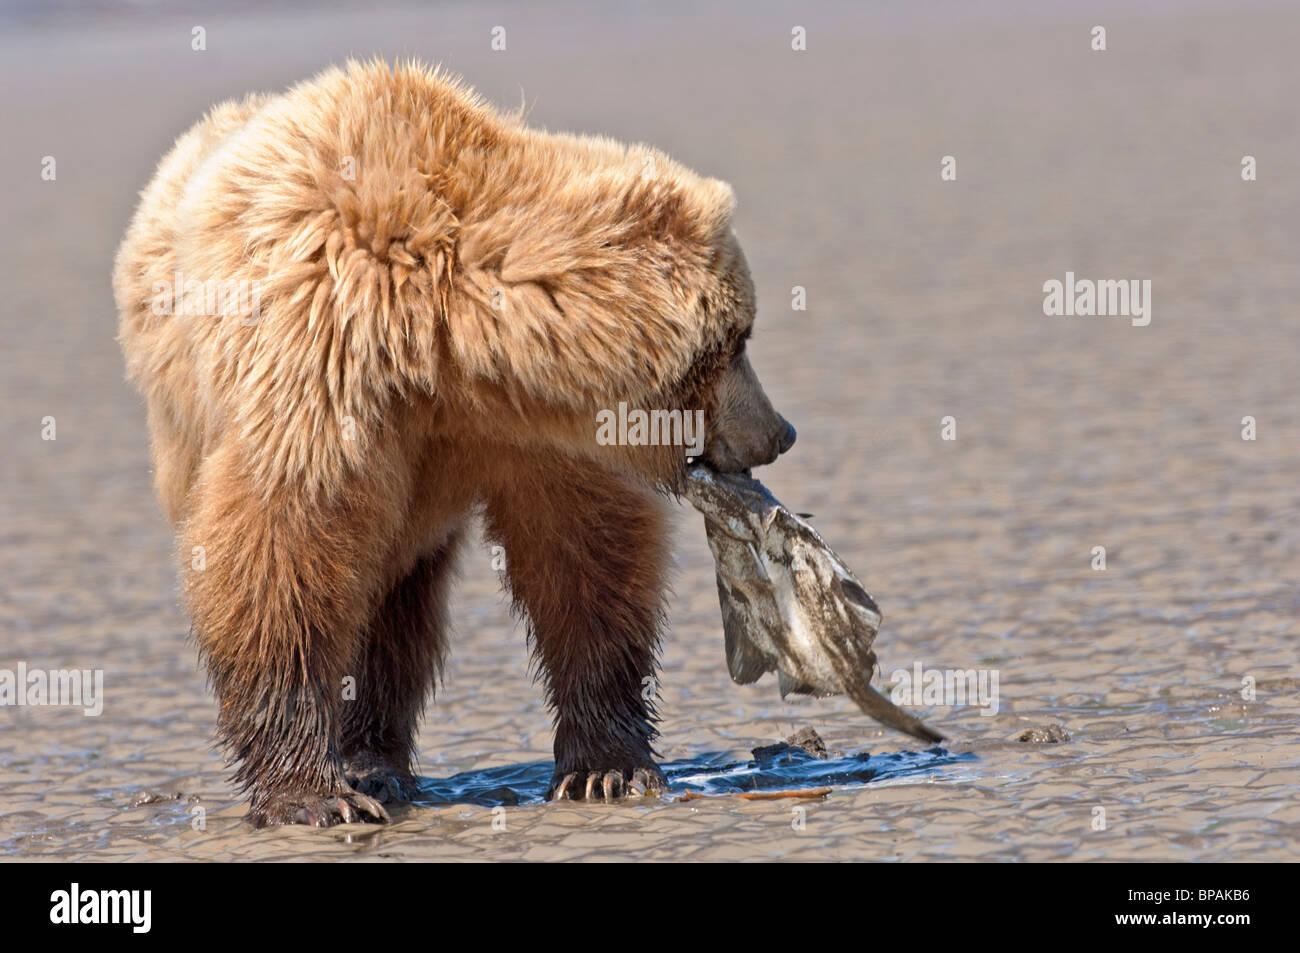 Stock photo of an Alaskan coastal brown bear picking up a flounder off the tidal flats, Lake Clark National Park, - Stock Image